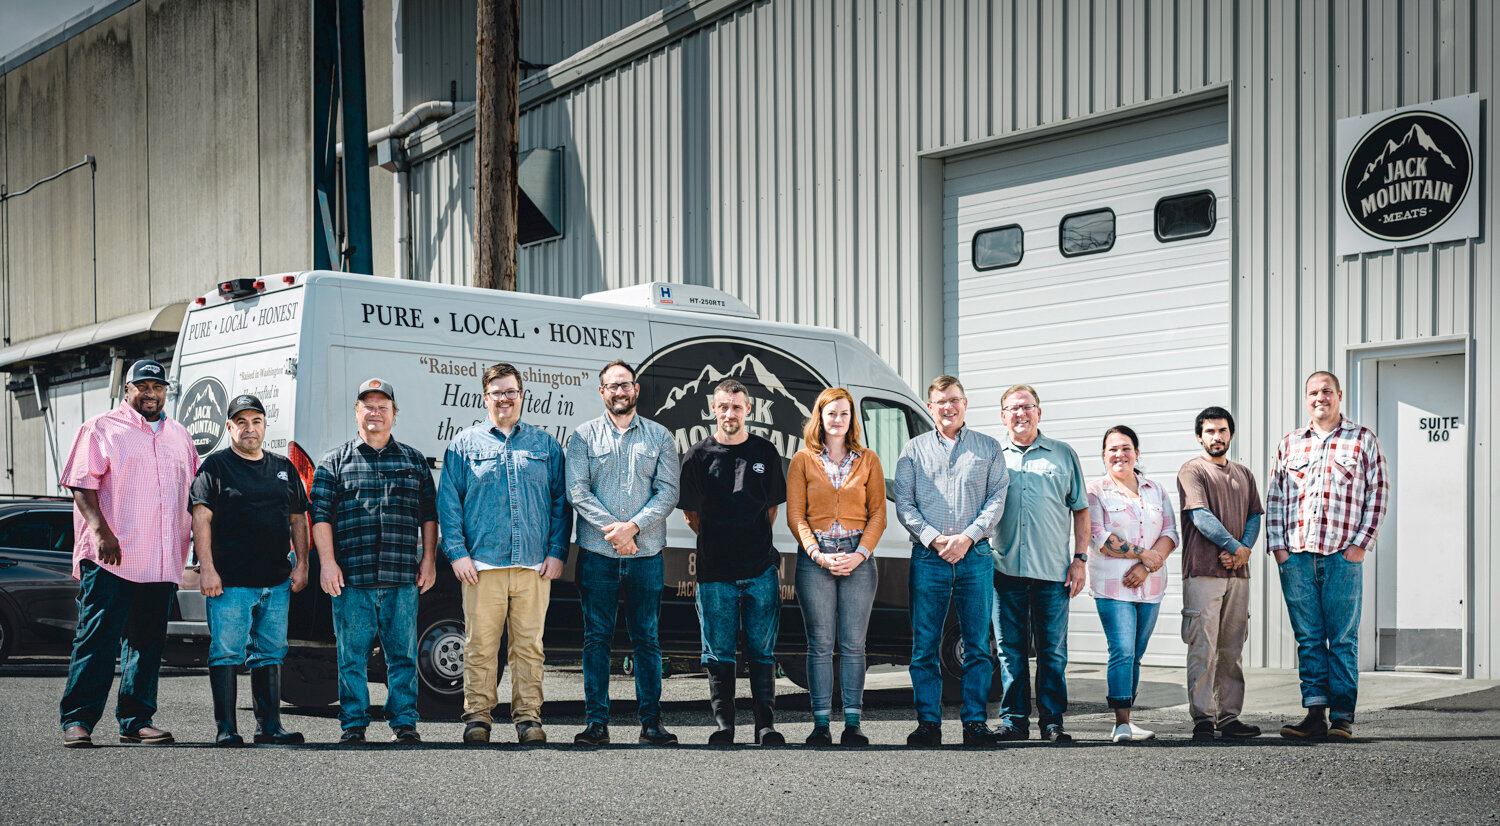 The Jack Mountain Meats team